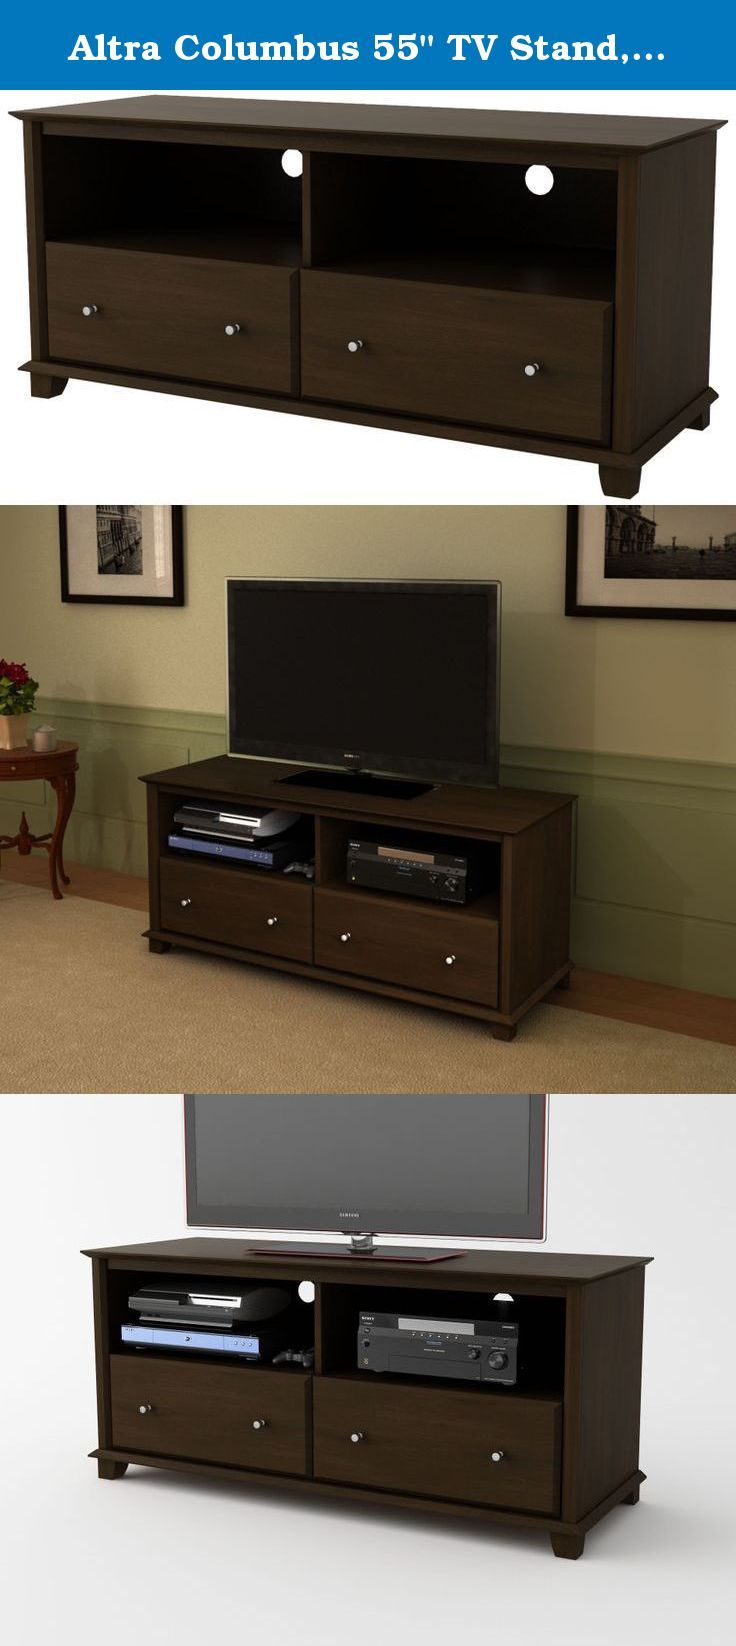 """Altra Columbus 55"""" TV Stand, Resort Cherry. Make your TV room more inviting with the warm Cherry finish of the Altra Columbus 55"""" TV Stand. Accented by brushed nickel drawer pulls, this versatile piece is equally at home in transitional and modern environments. The TV Stand features a profiles top and bottom for a classic, well-crafted look. This Stand accommodates flat panel TVs up to 55"""" wide. Two open compartments let you store your cable box, DVD player or gaming system easily. Use the…"""